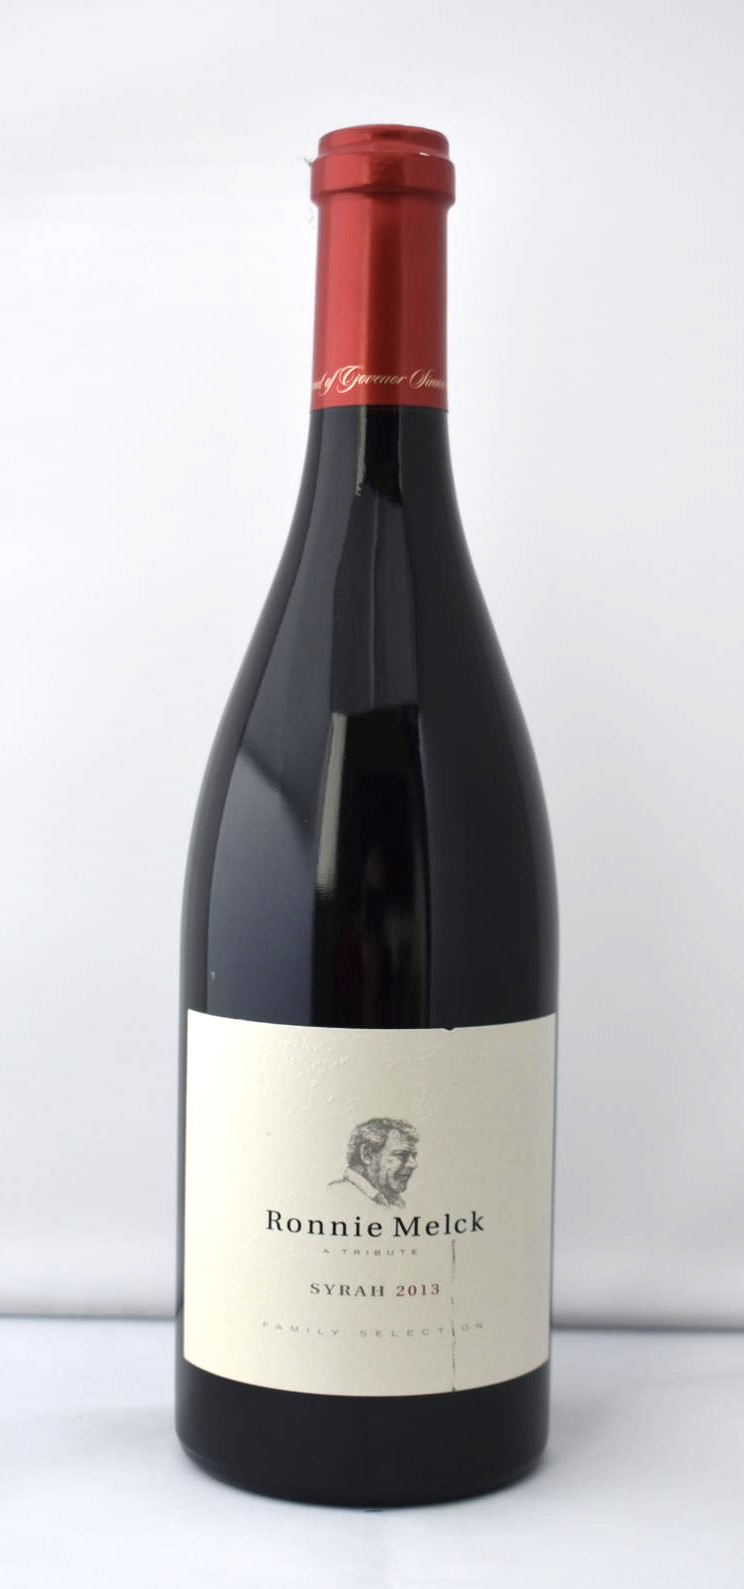 Muratie Ronnie Melck Syrah Family Selection